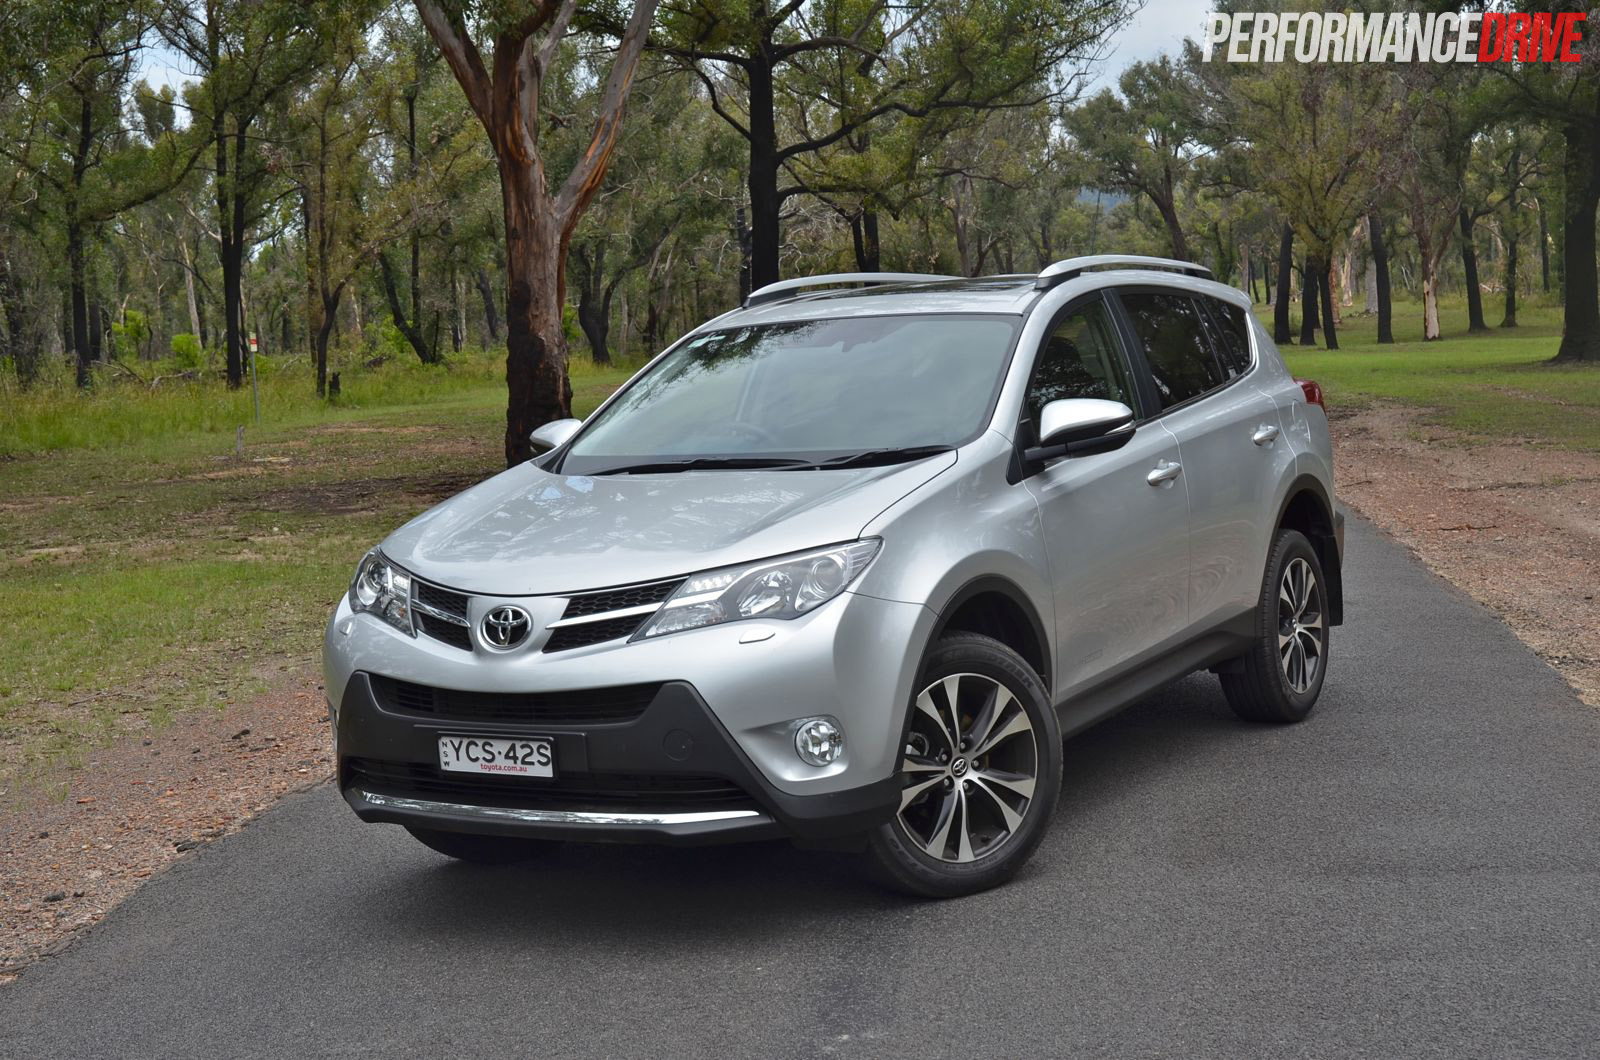 toyota rav4 2015 silver images galleries with a bite. Black Bedroom Furniture Sets. Home Design Ideas